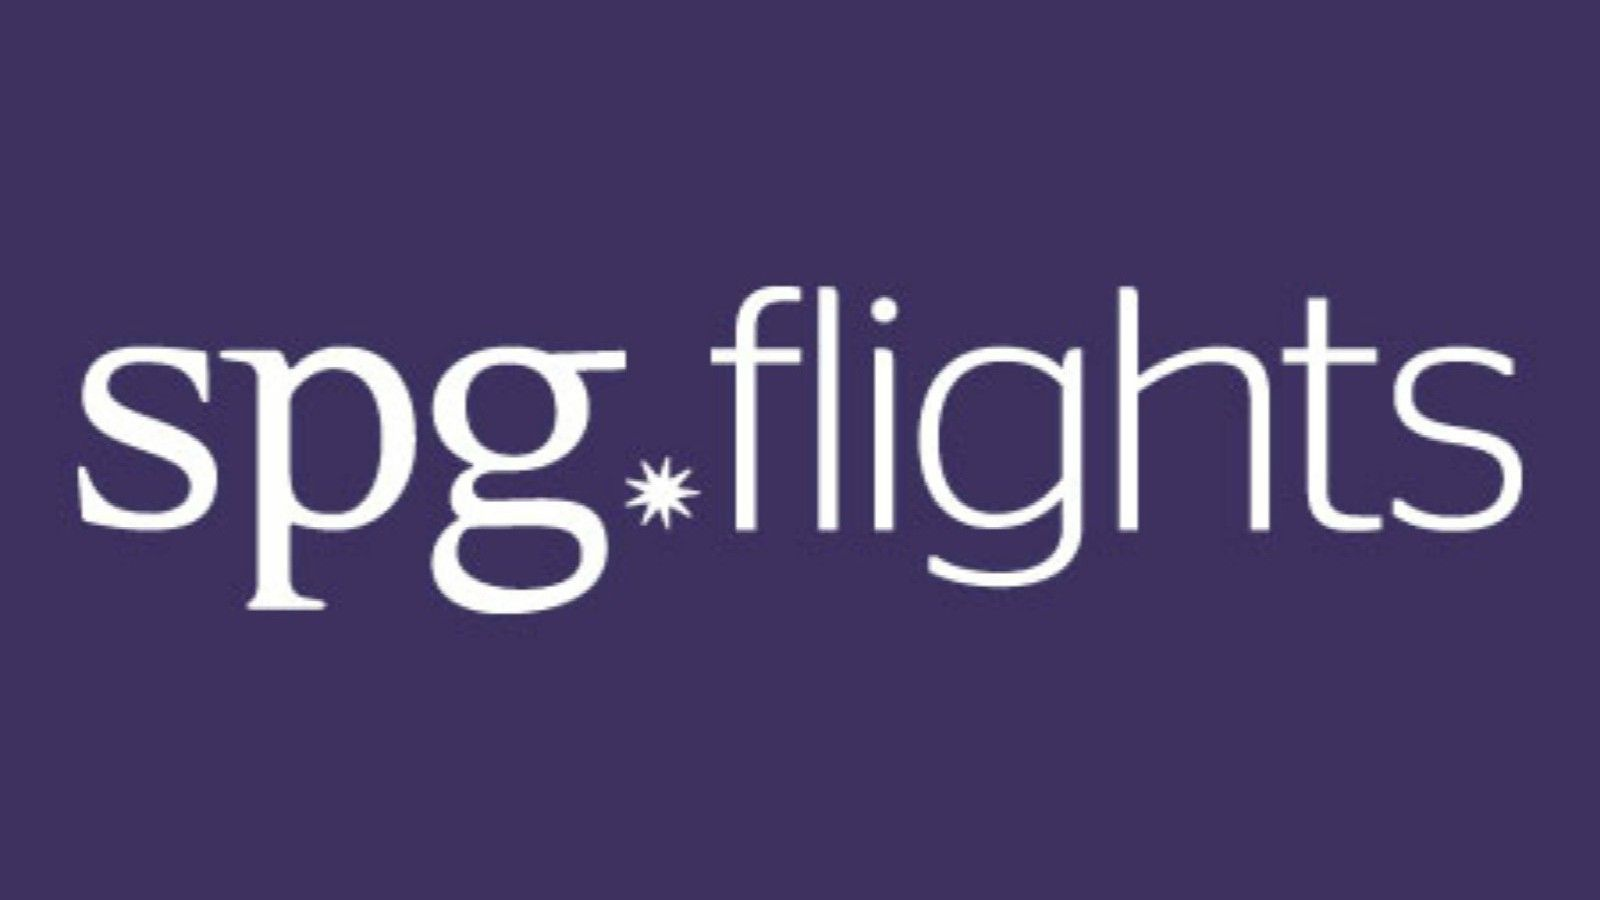 SPG Redemptions | SPG Flights